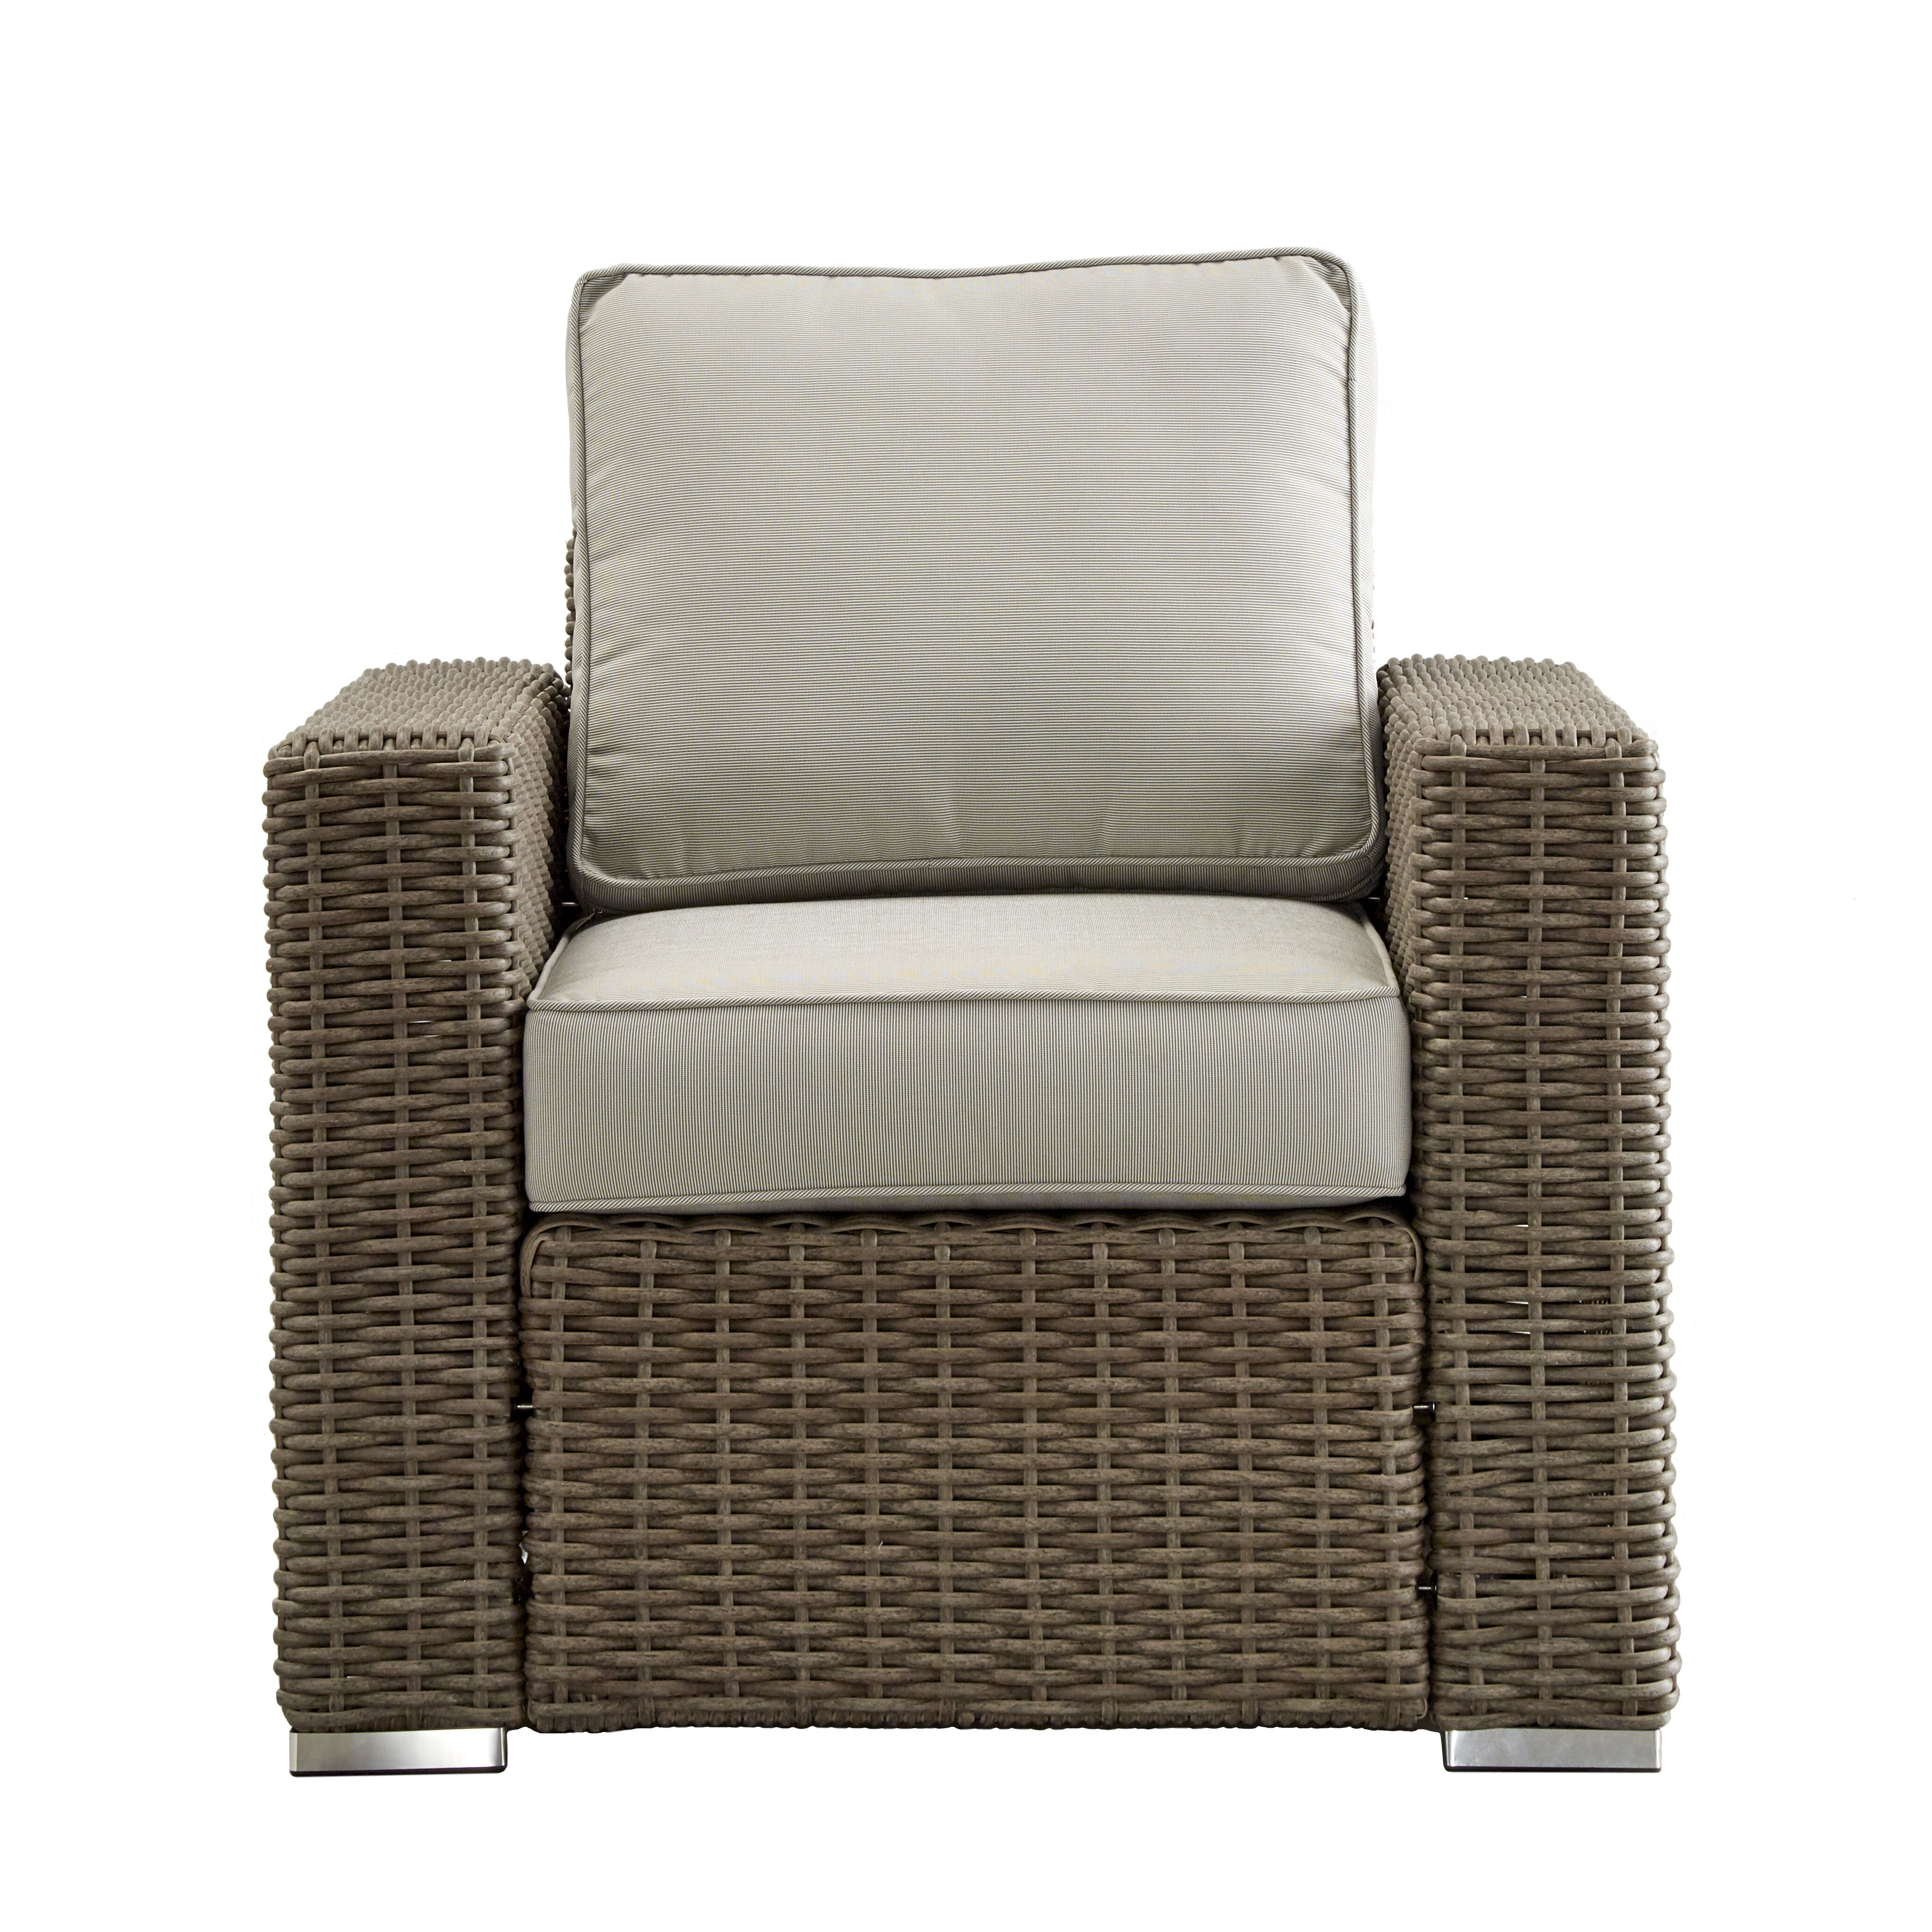 Darby Home Co Rathdowney Wicker Outdoor Occasional Arm